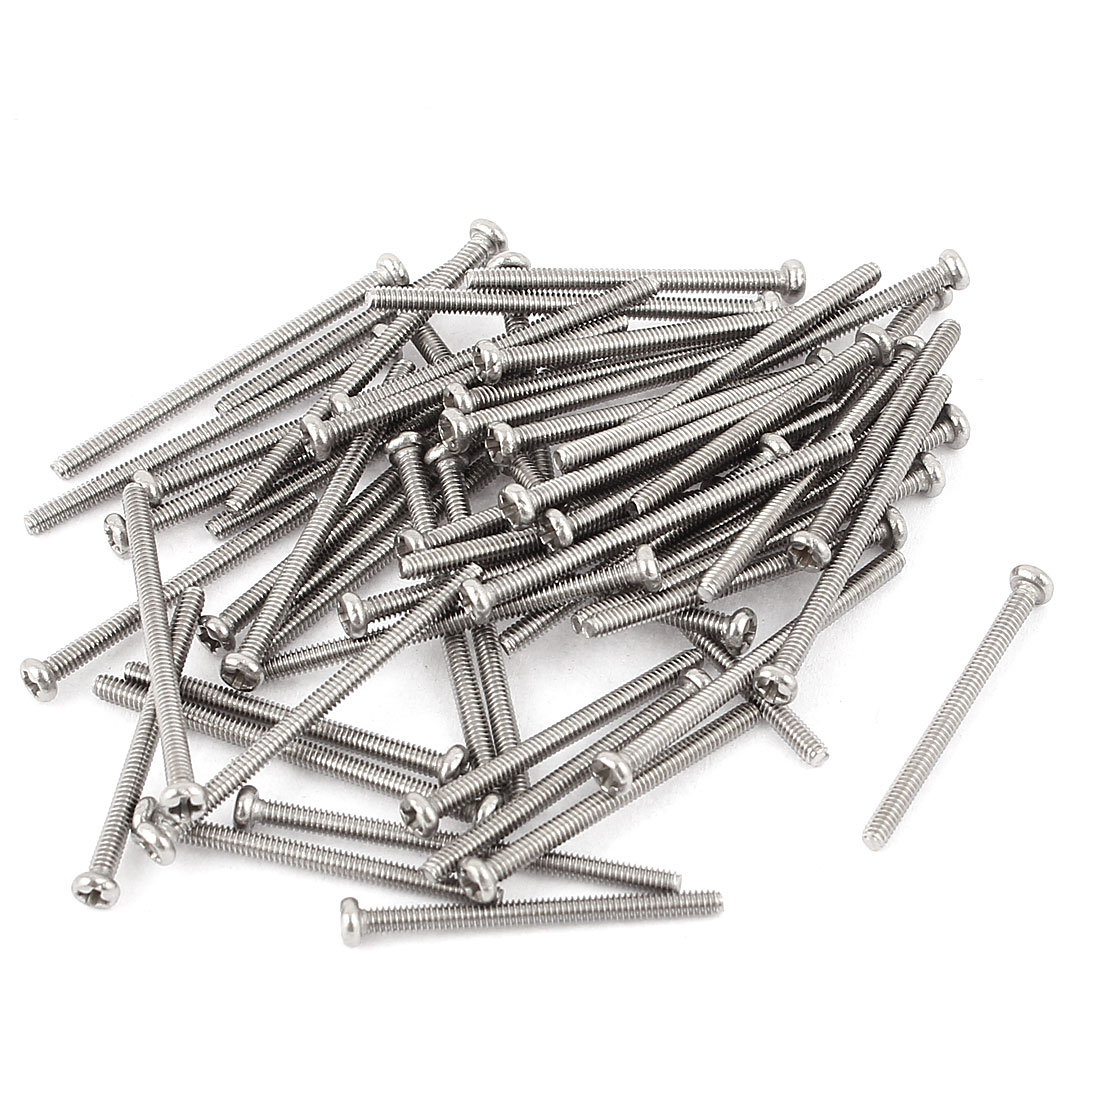 M2 x 30mm 304 Stainless Steel Crosshead Phillips Round Head Screws Bolt 30pcs